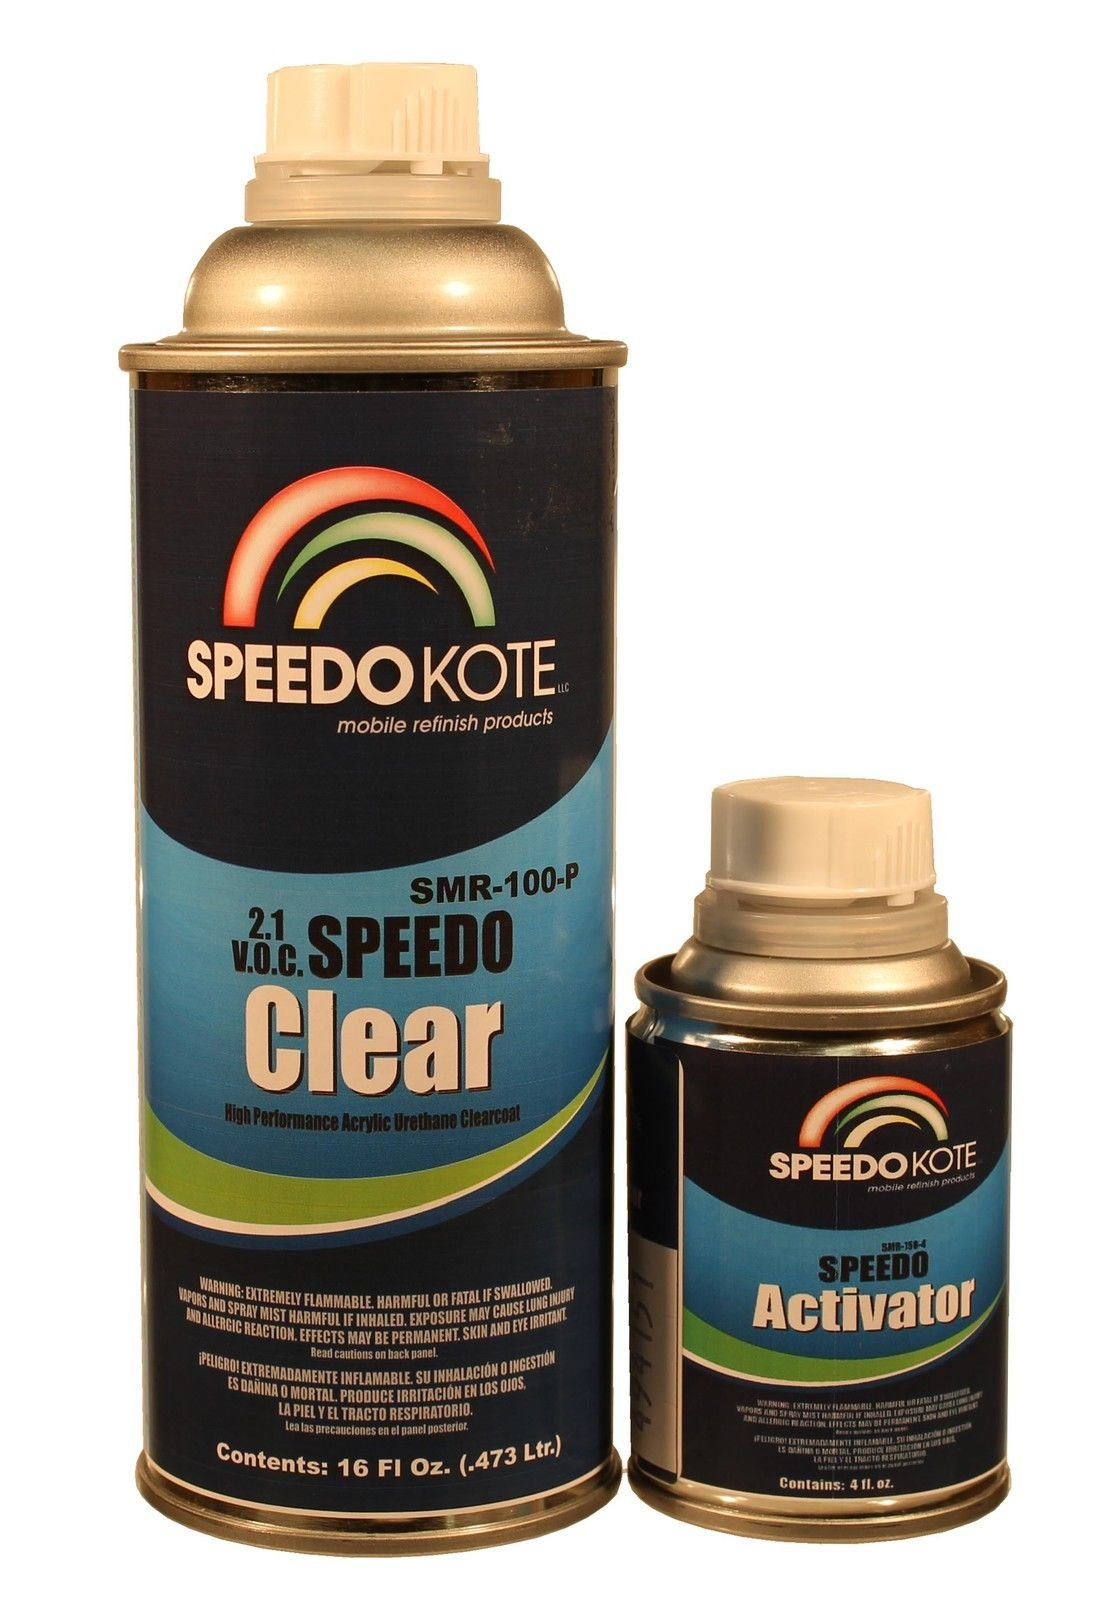 Extremely Fast Clear Coat, 2.1 voc Spot Clearcoat slow Pint Kit, SMR-100-P/170-4